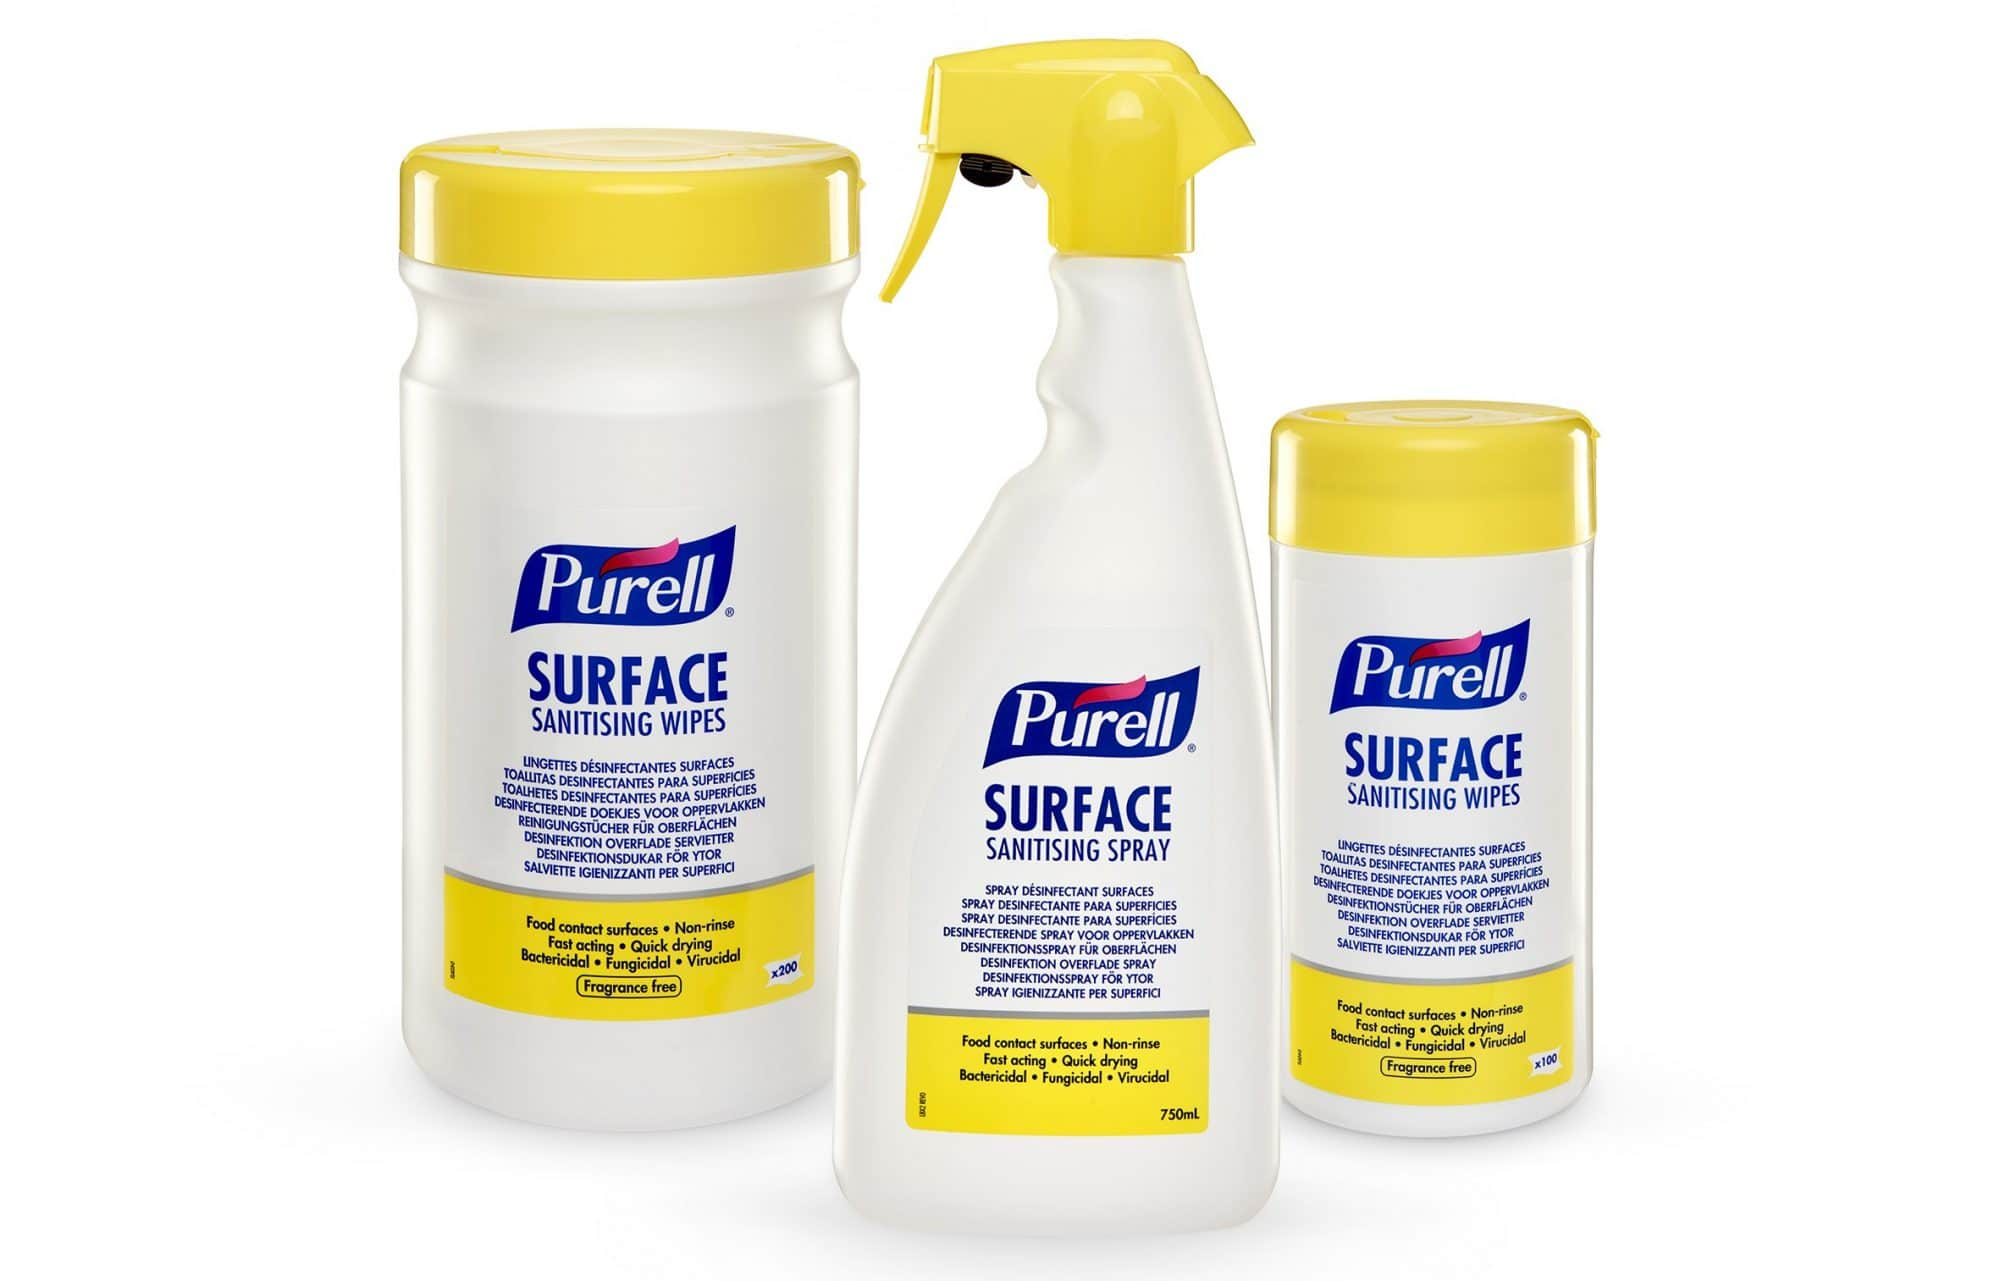 PURELL Surface Sanitising Spray & Wipes launched to address a